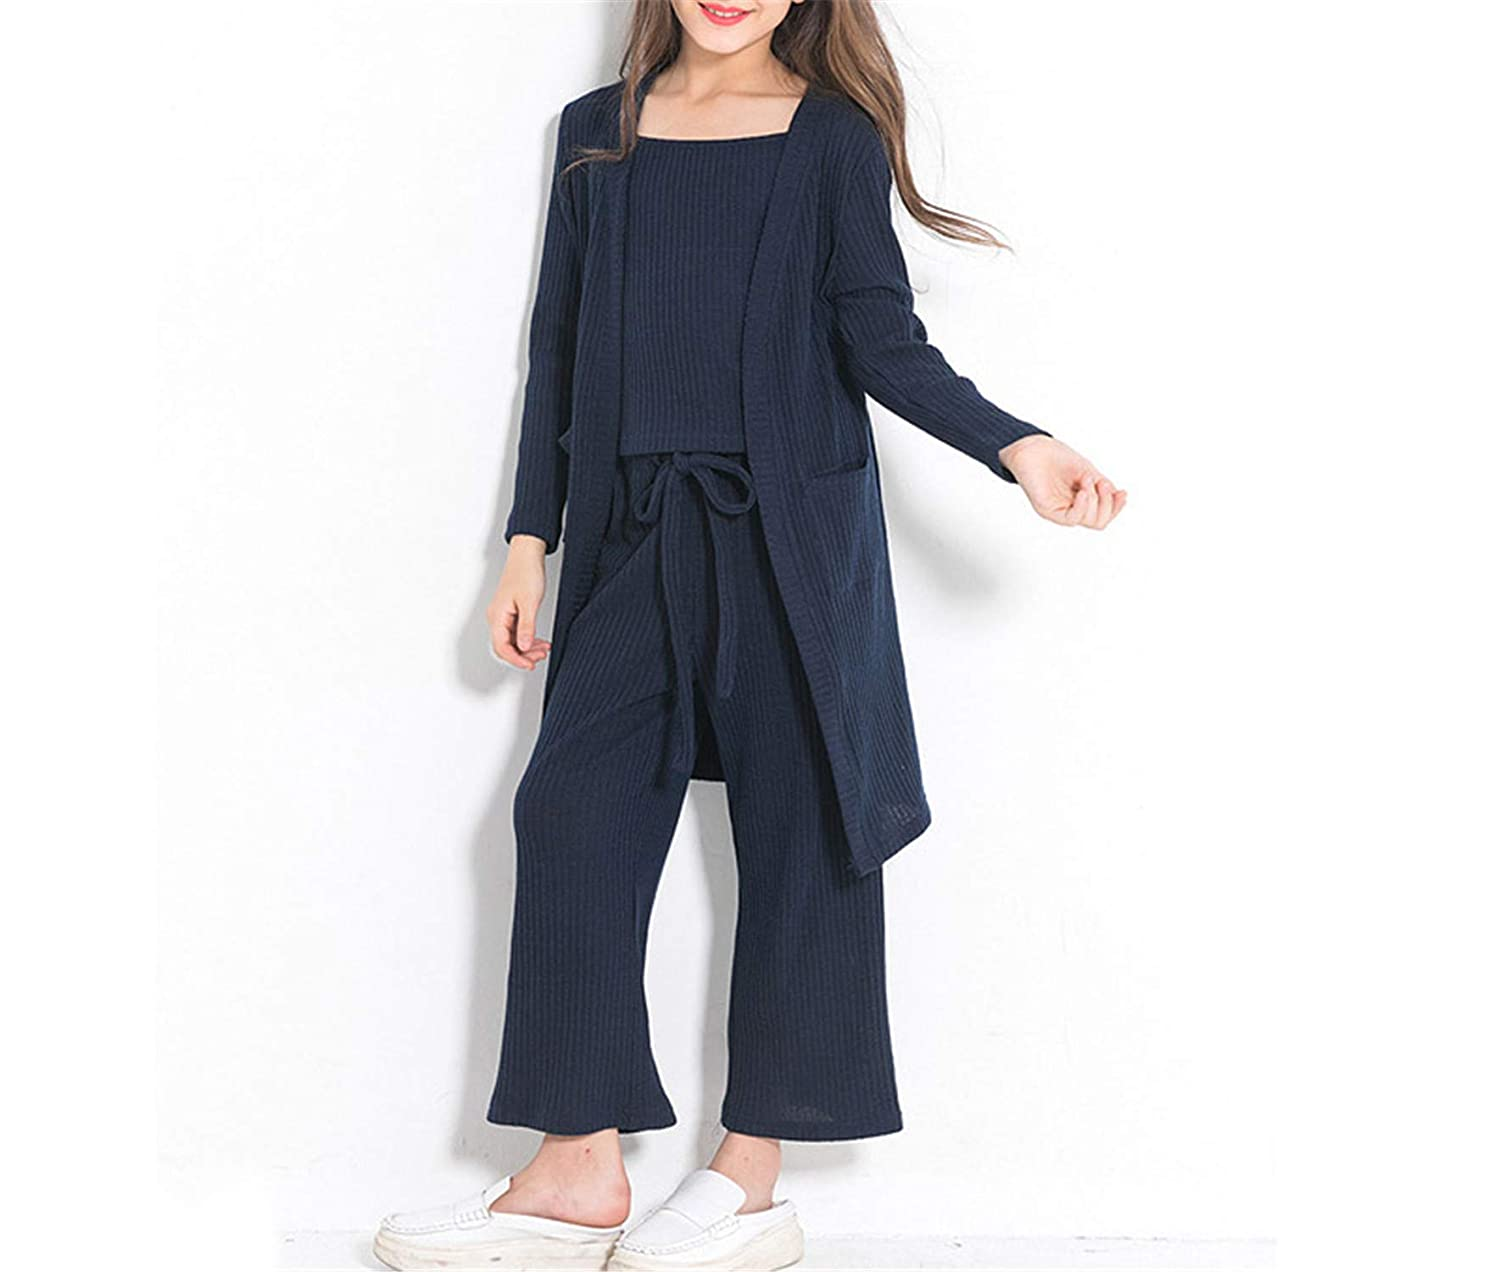 Teenage Girls 3Pcs Children Clothing Set Outfit Long Sleeve Coat Tops Pants